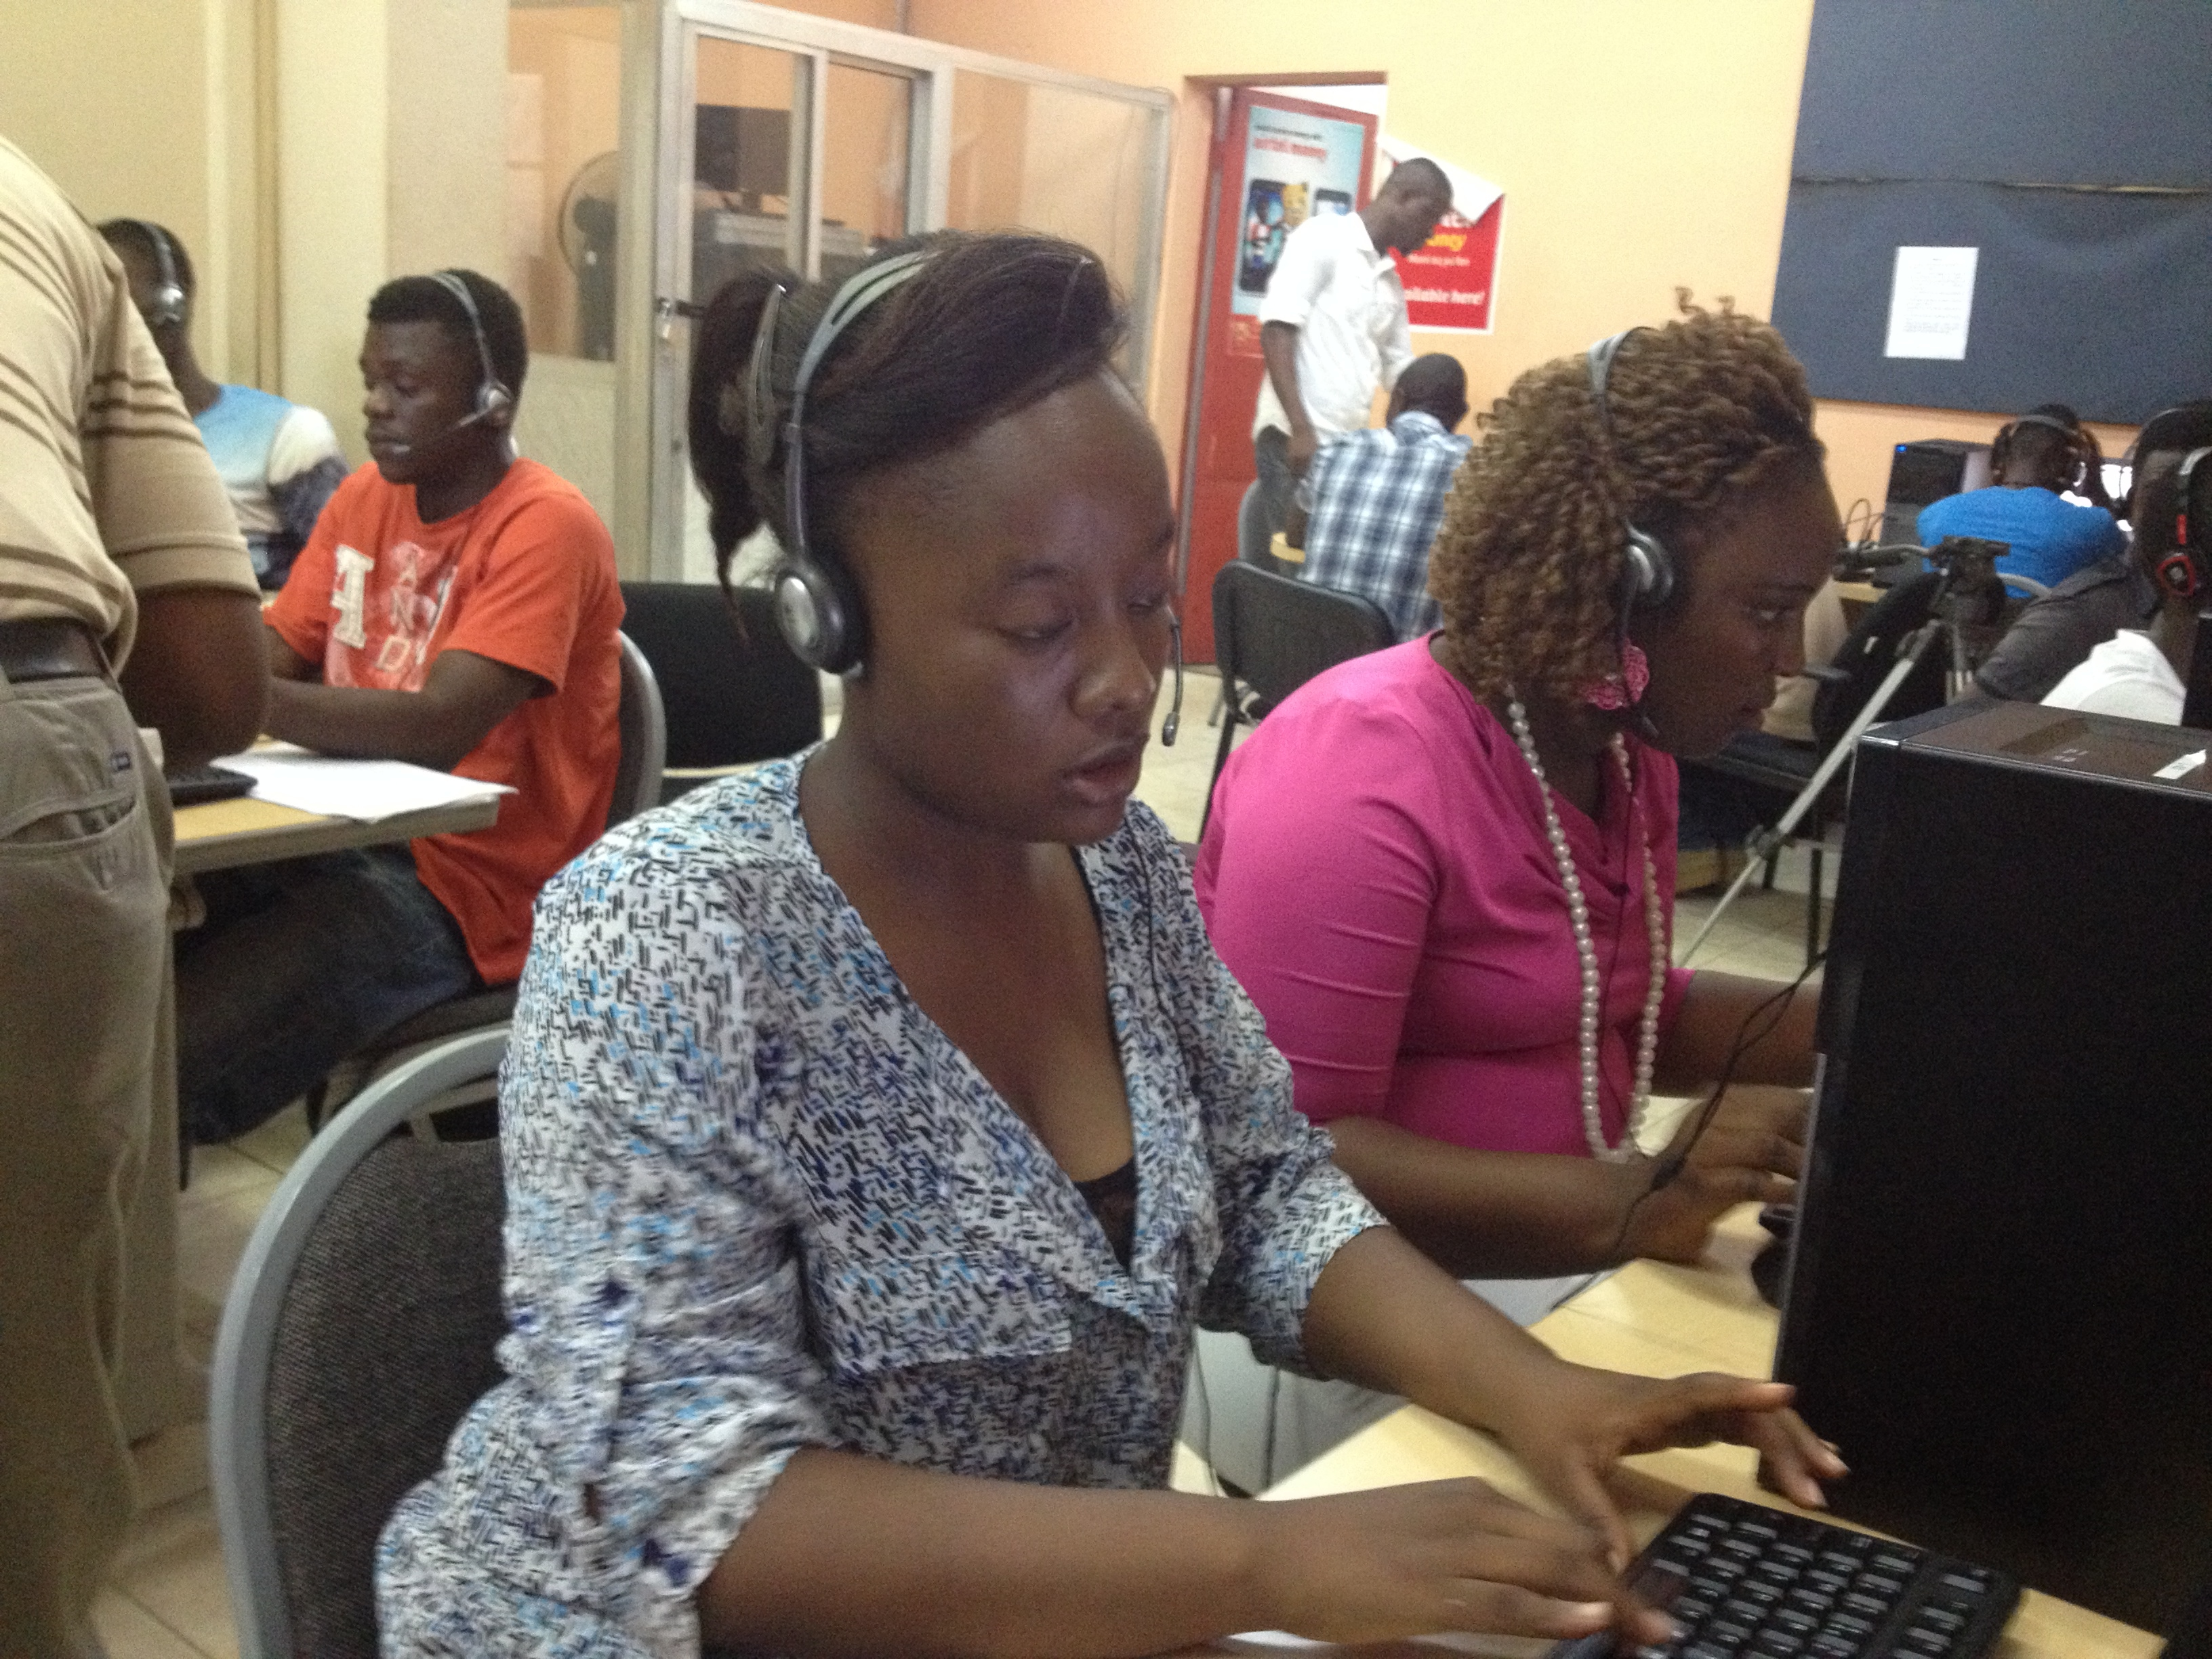 First responders at the 117 call center Grace Kargobai (left) and Victoria Dyka (far right), Freetown, Sierra  Leone, Oct, 30, 2014. ( Nina deVries / VOA)